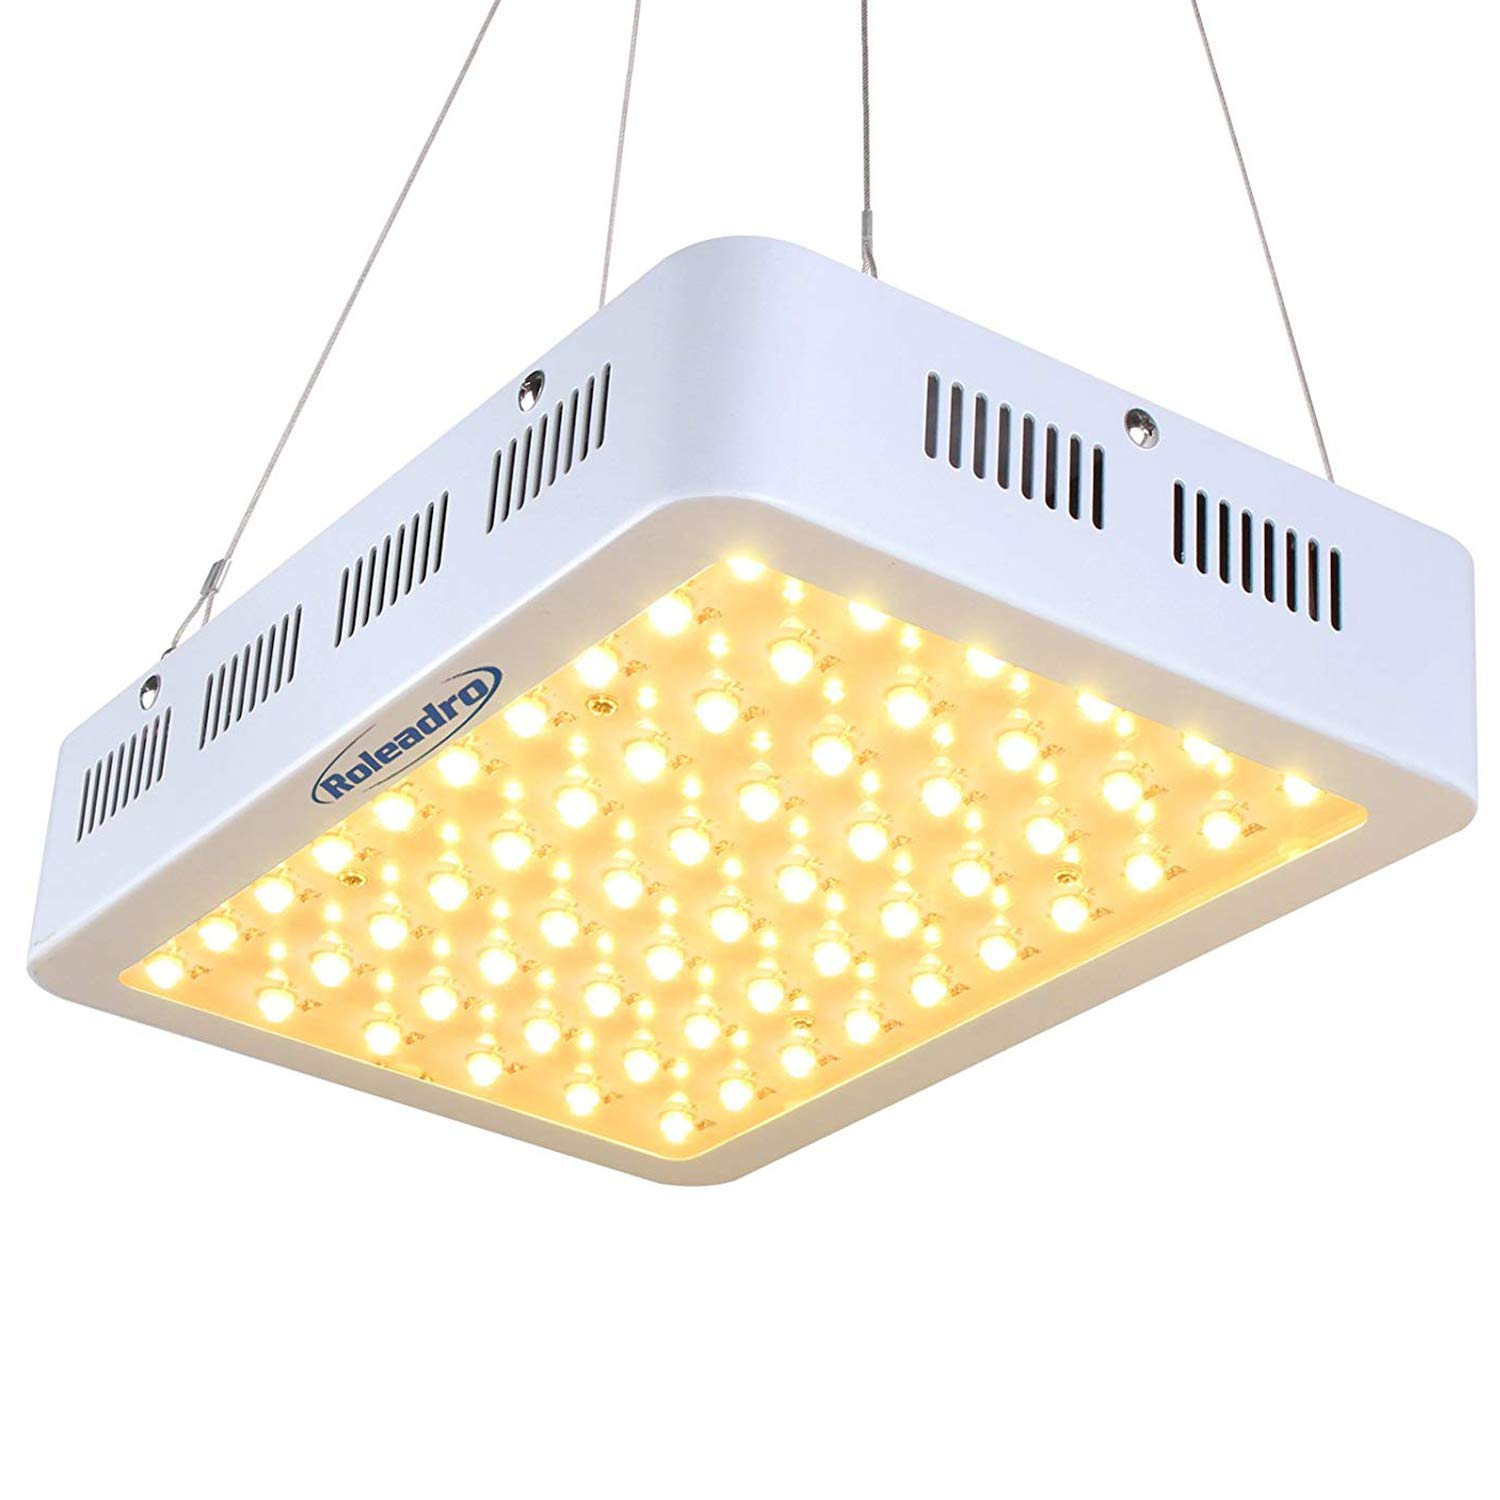 Roleadro 300W LED Grow Light 2nd Generation Series Plant Light with Full Spectrum for Indoor, Greenhouse, Hydroponics Veg and Bloom